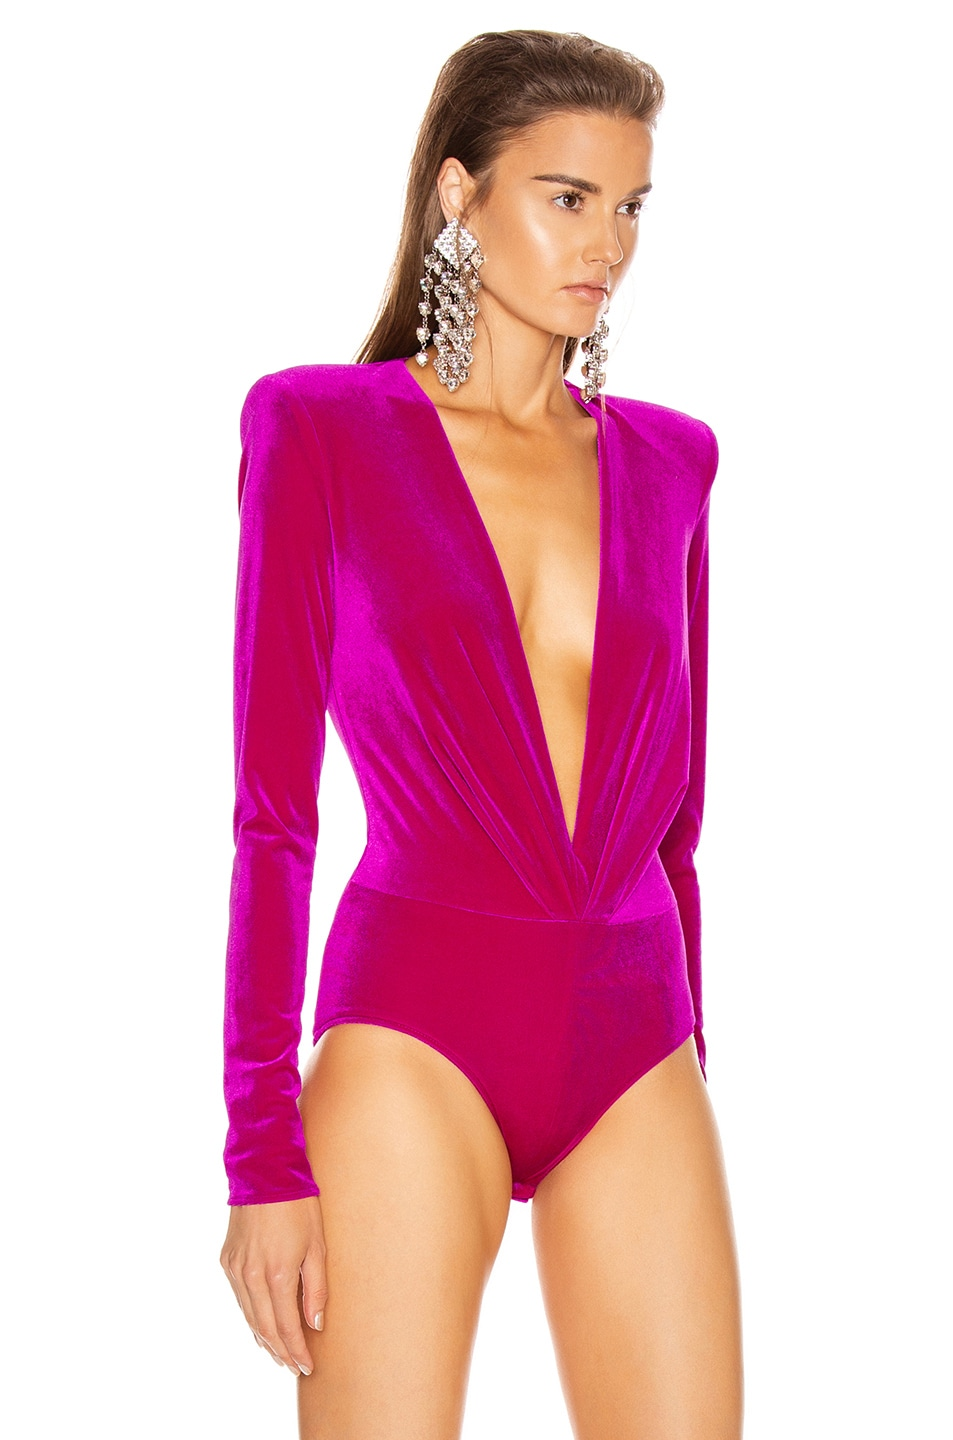 Image 3 of Alexandre Vauthier for FWRD Plunging Velvet Bodysuit in Fuchsia